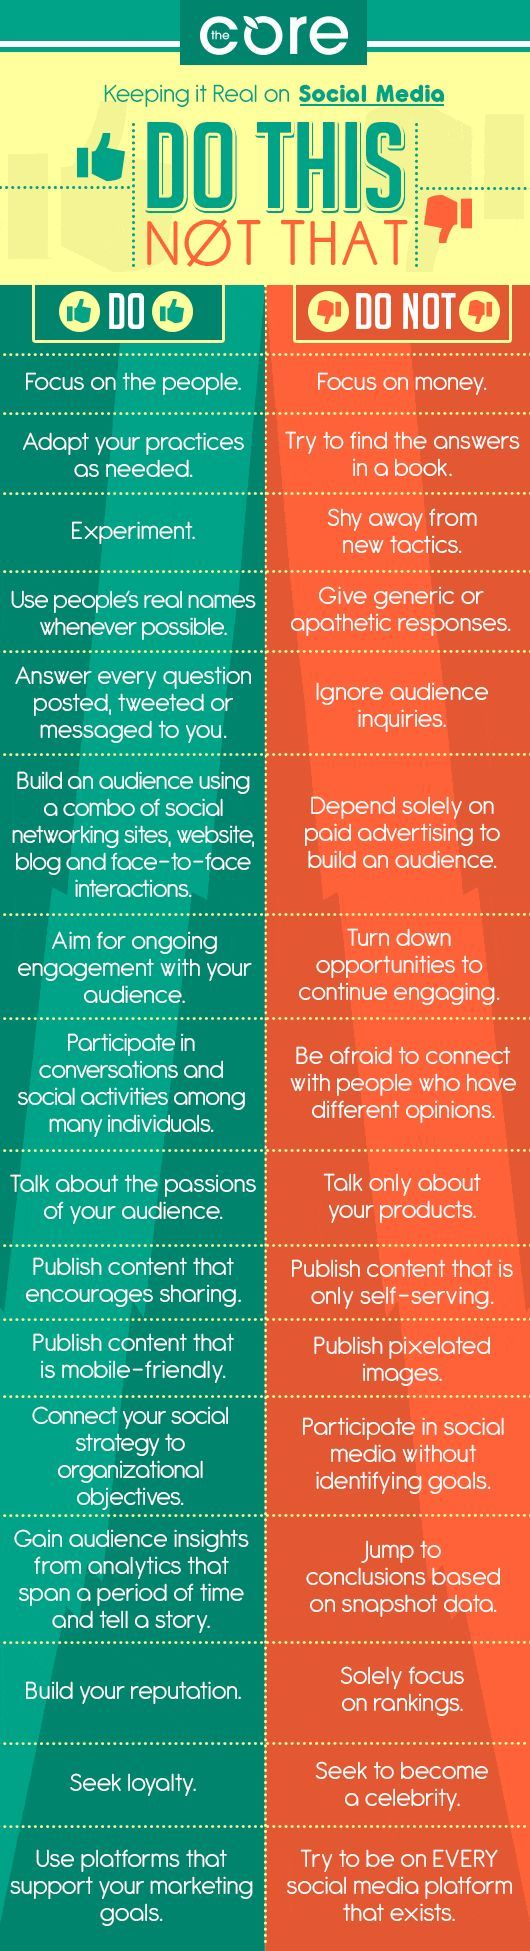 16 Things You Should Do On #SocialMedia To Stand Out http://www.digitalinformationworld.com/2013/07/16-things-you-should-do-on-social-media.html #etiquette